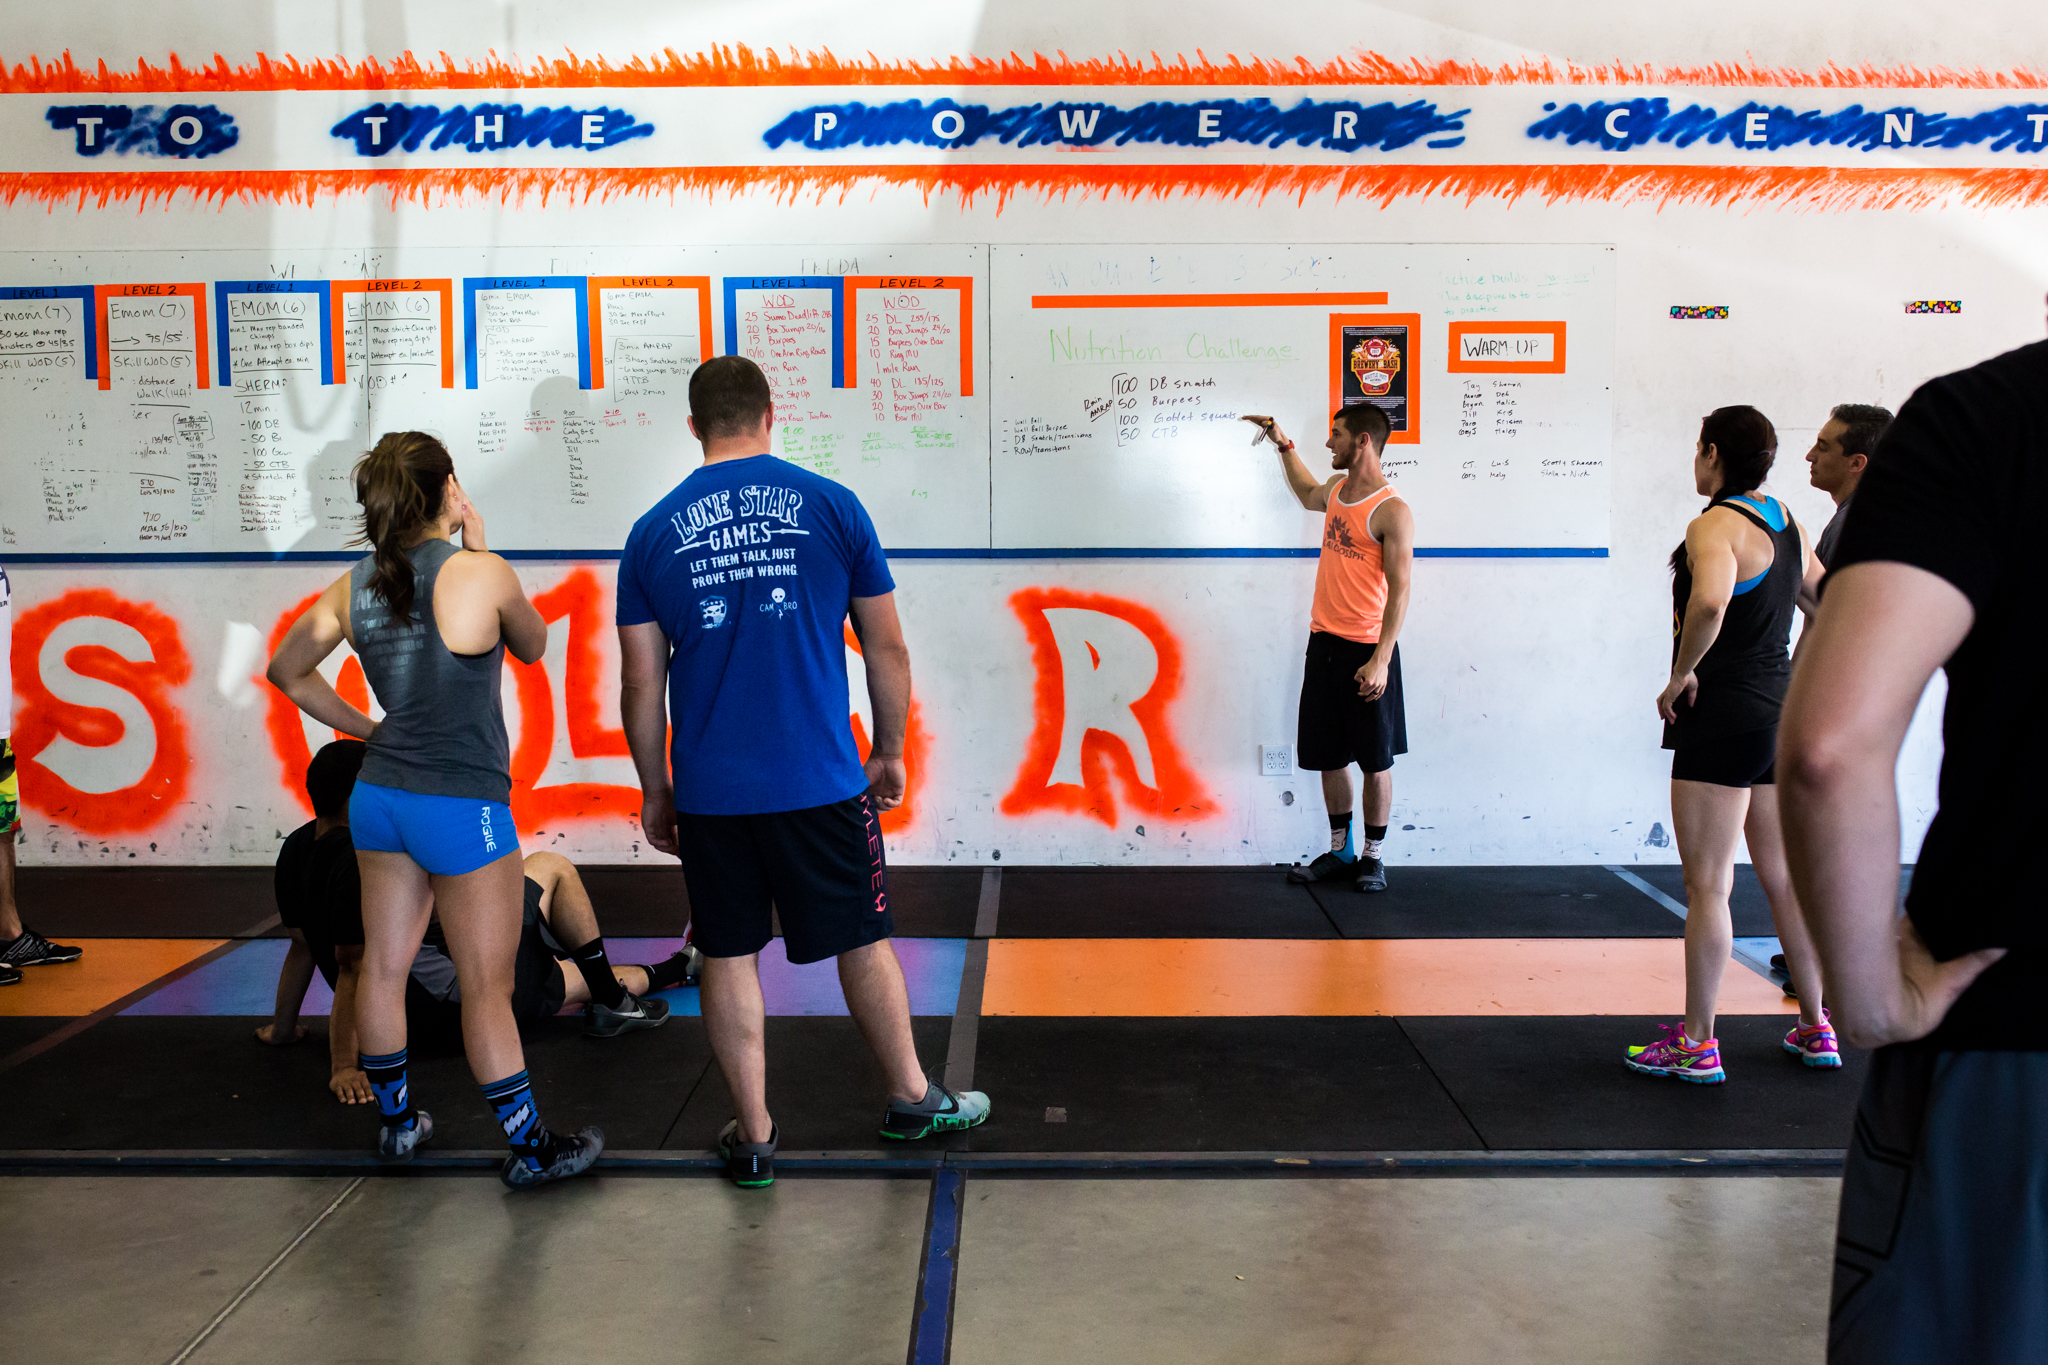 At a local crossfit gym in aubrey texas, Lawren Rose Photography sneaks a photo of the coach talking about the workout of the day